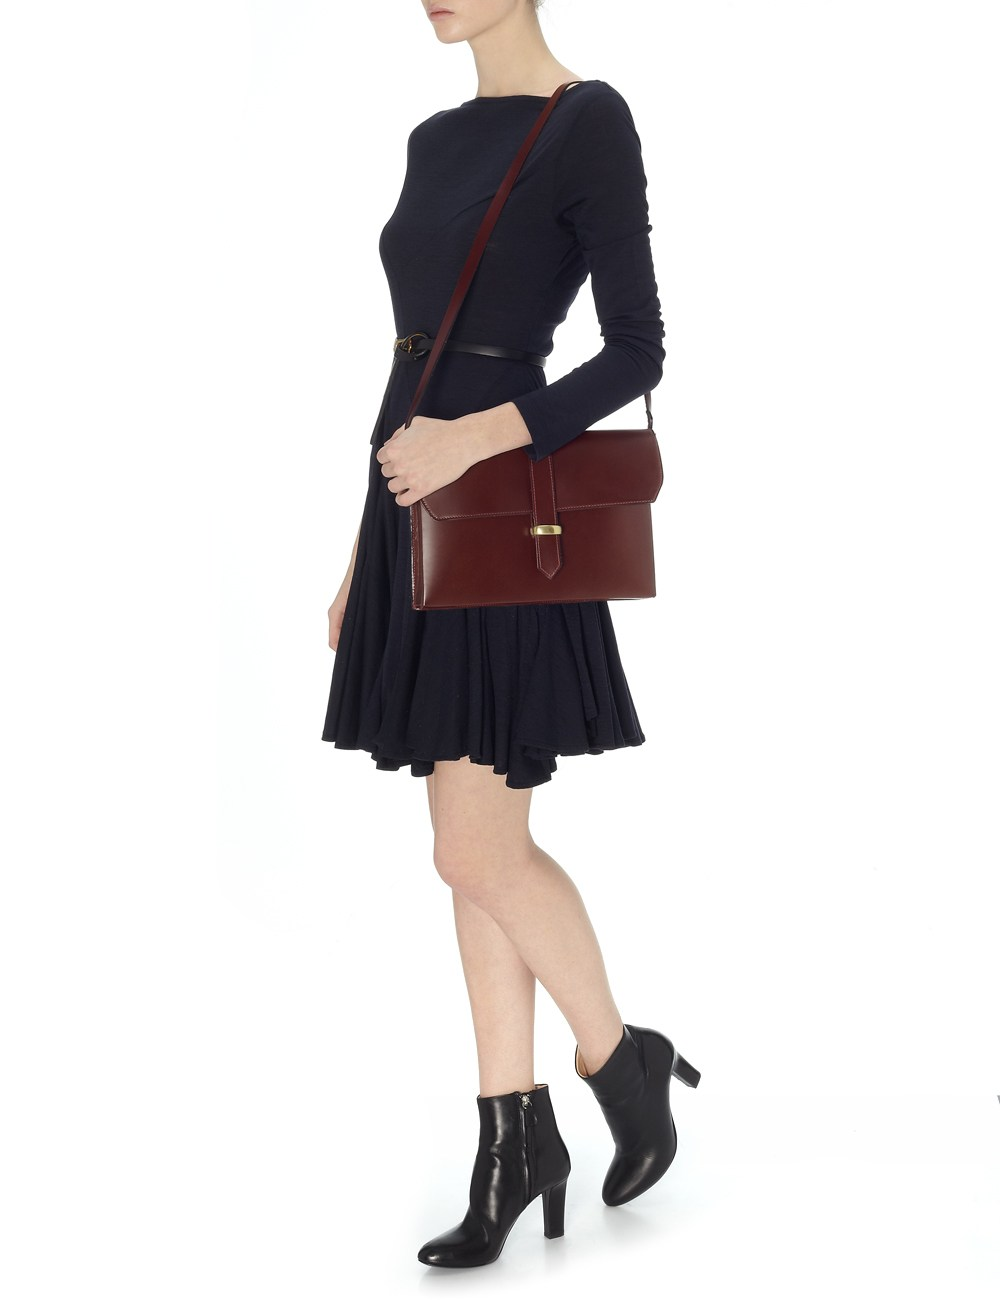 Lizzy Disney Loop Bag in Oxblood Burgundy